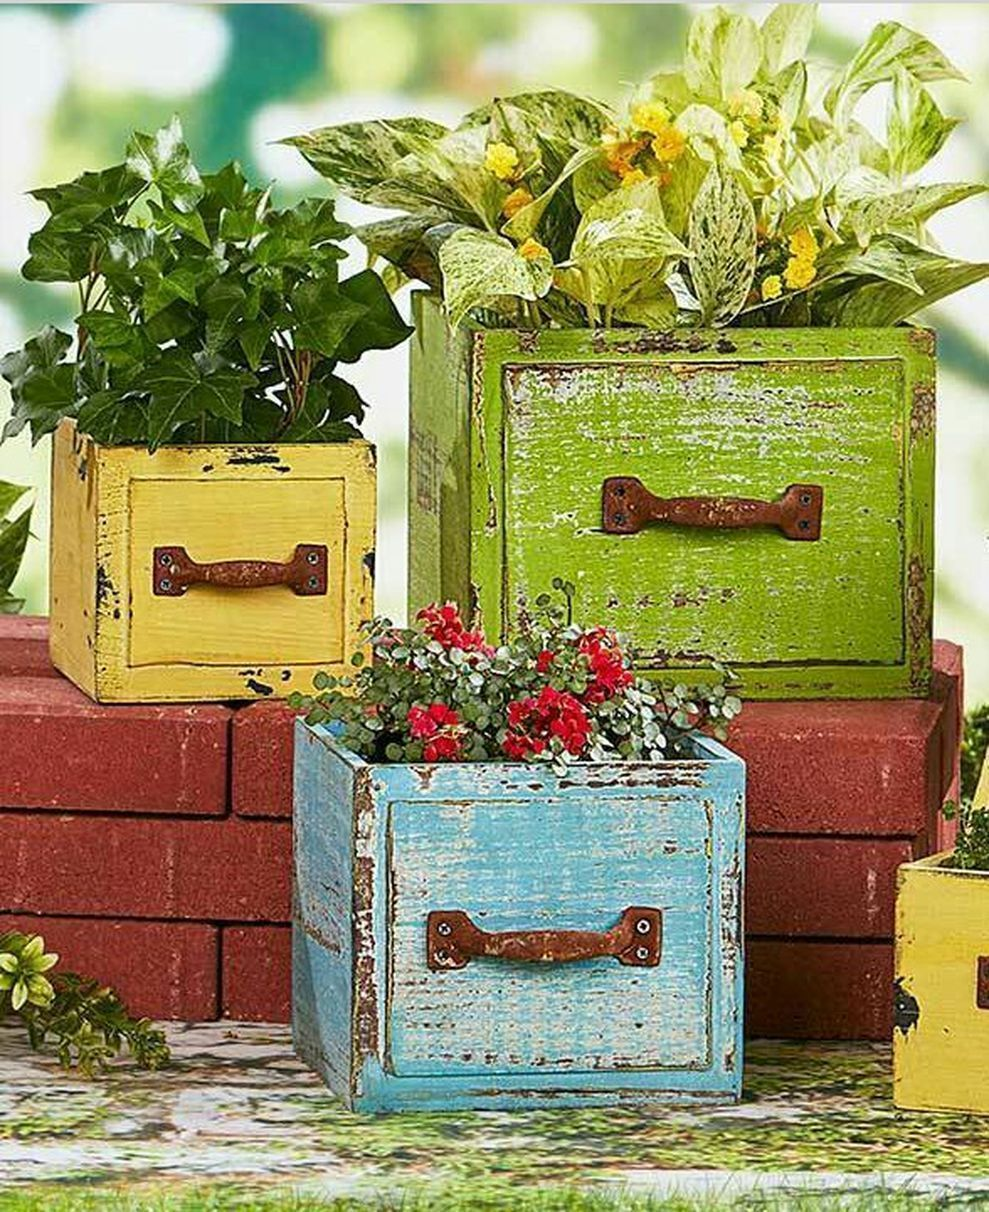 54 Amazing Wooden Garden Planters Ideas You Should Try #woodengardenplanters